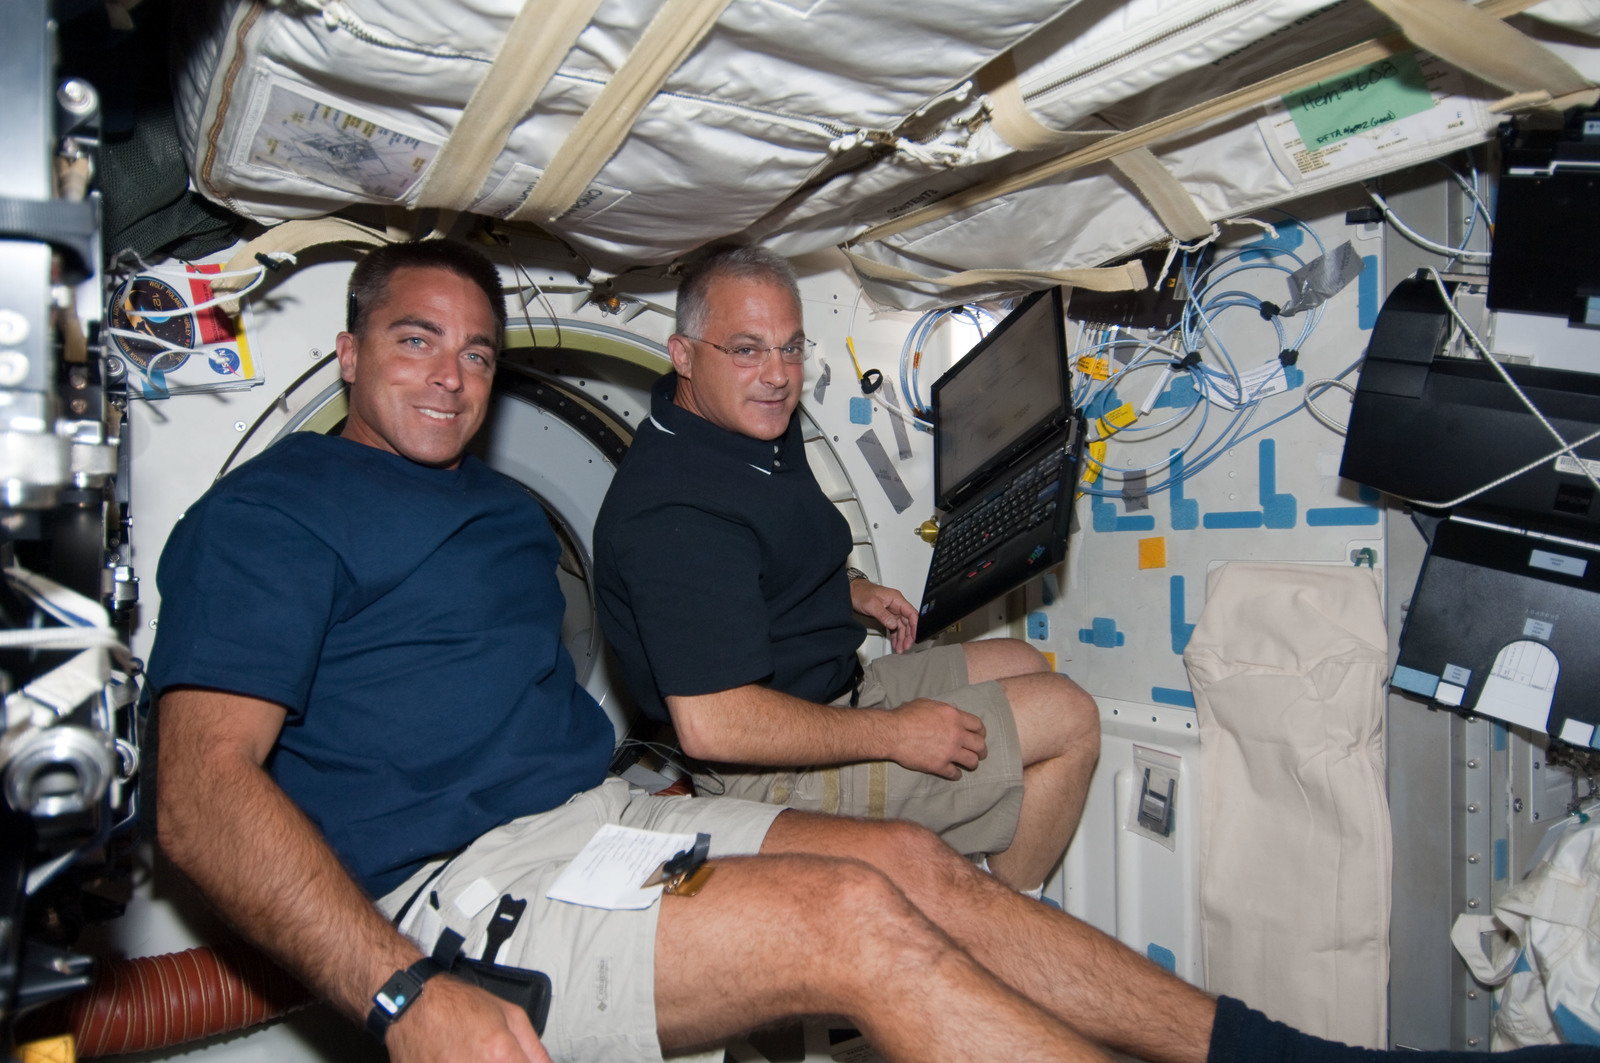 S127E006972 - STS-127 - Cassidy and Wolf in the MDDK during STS-127 / Expedition 20 Joint Operations